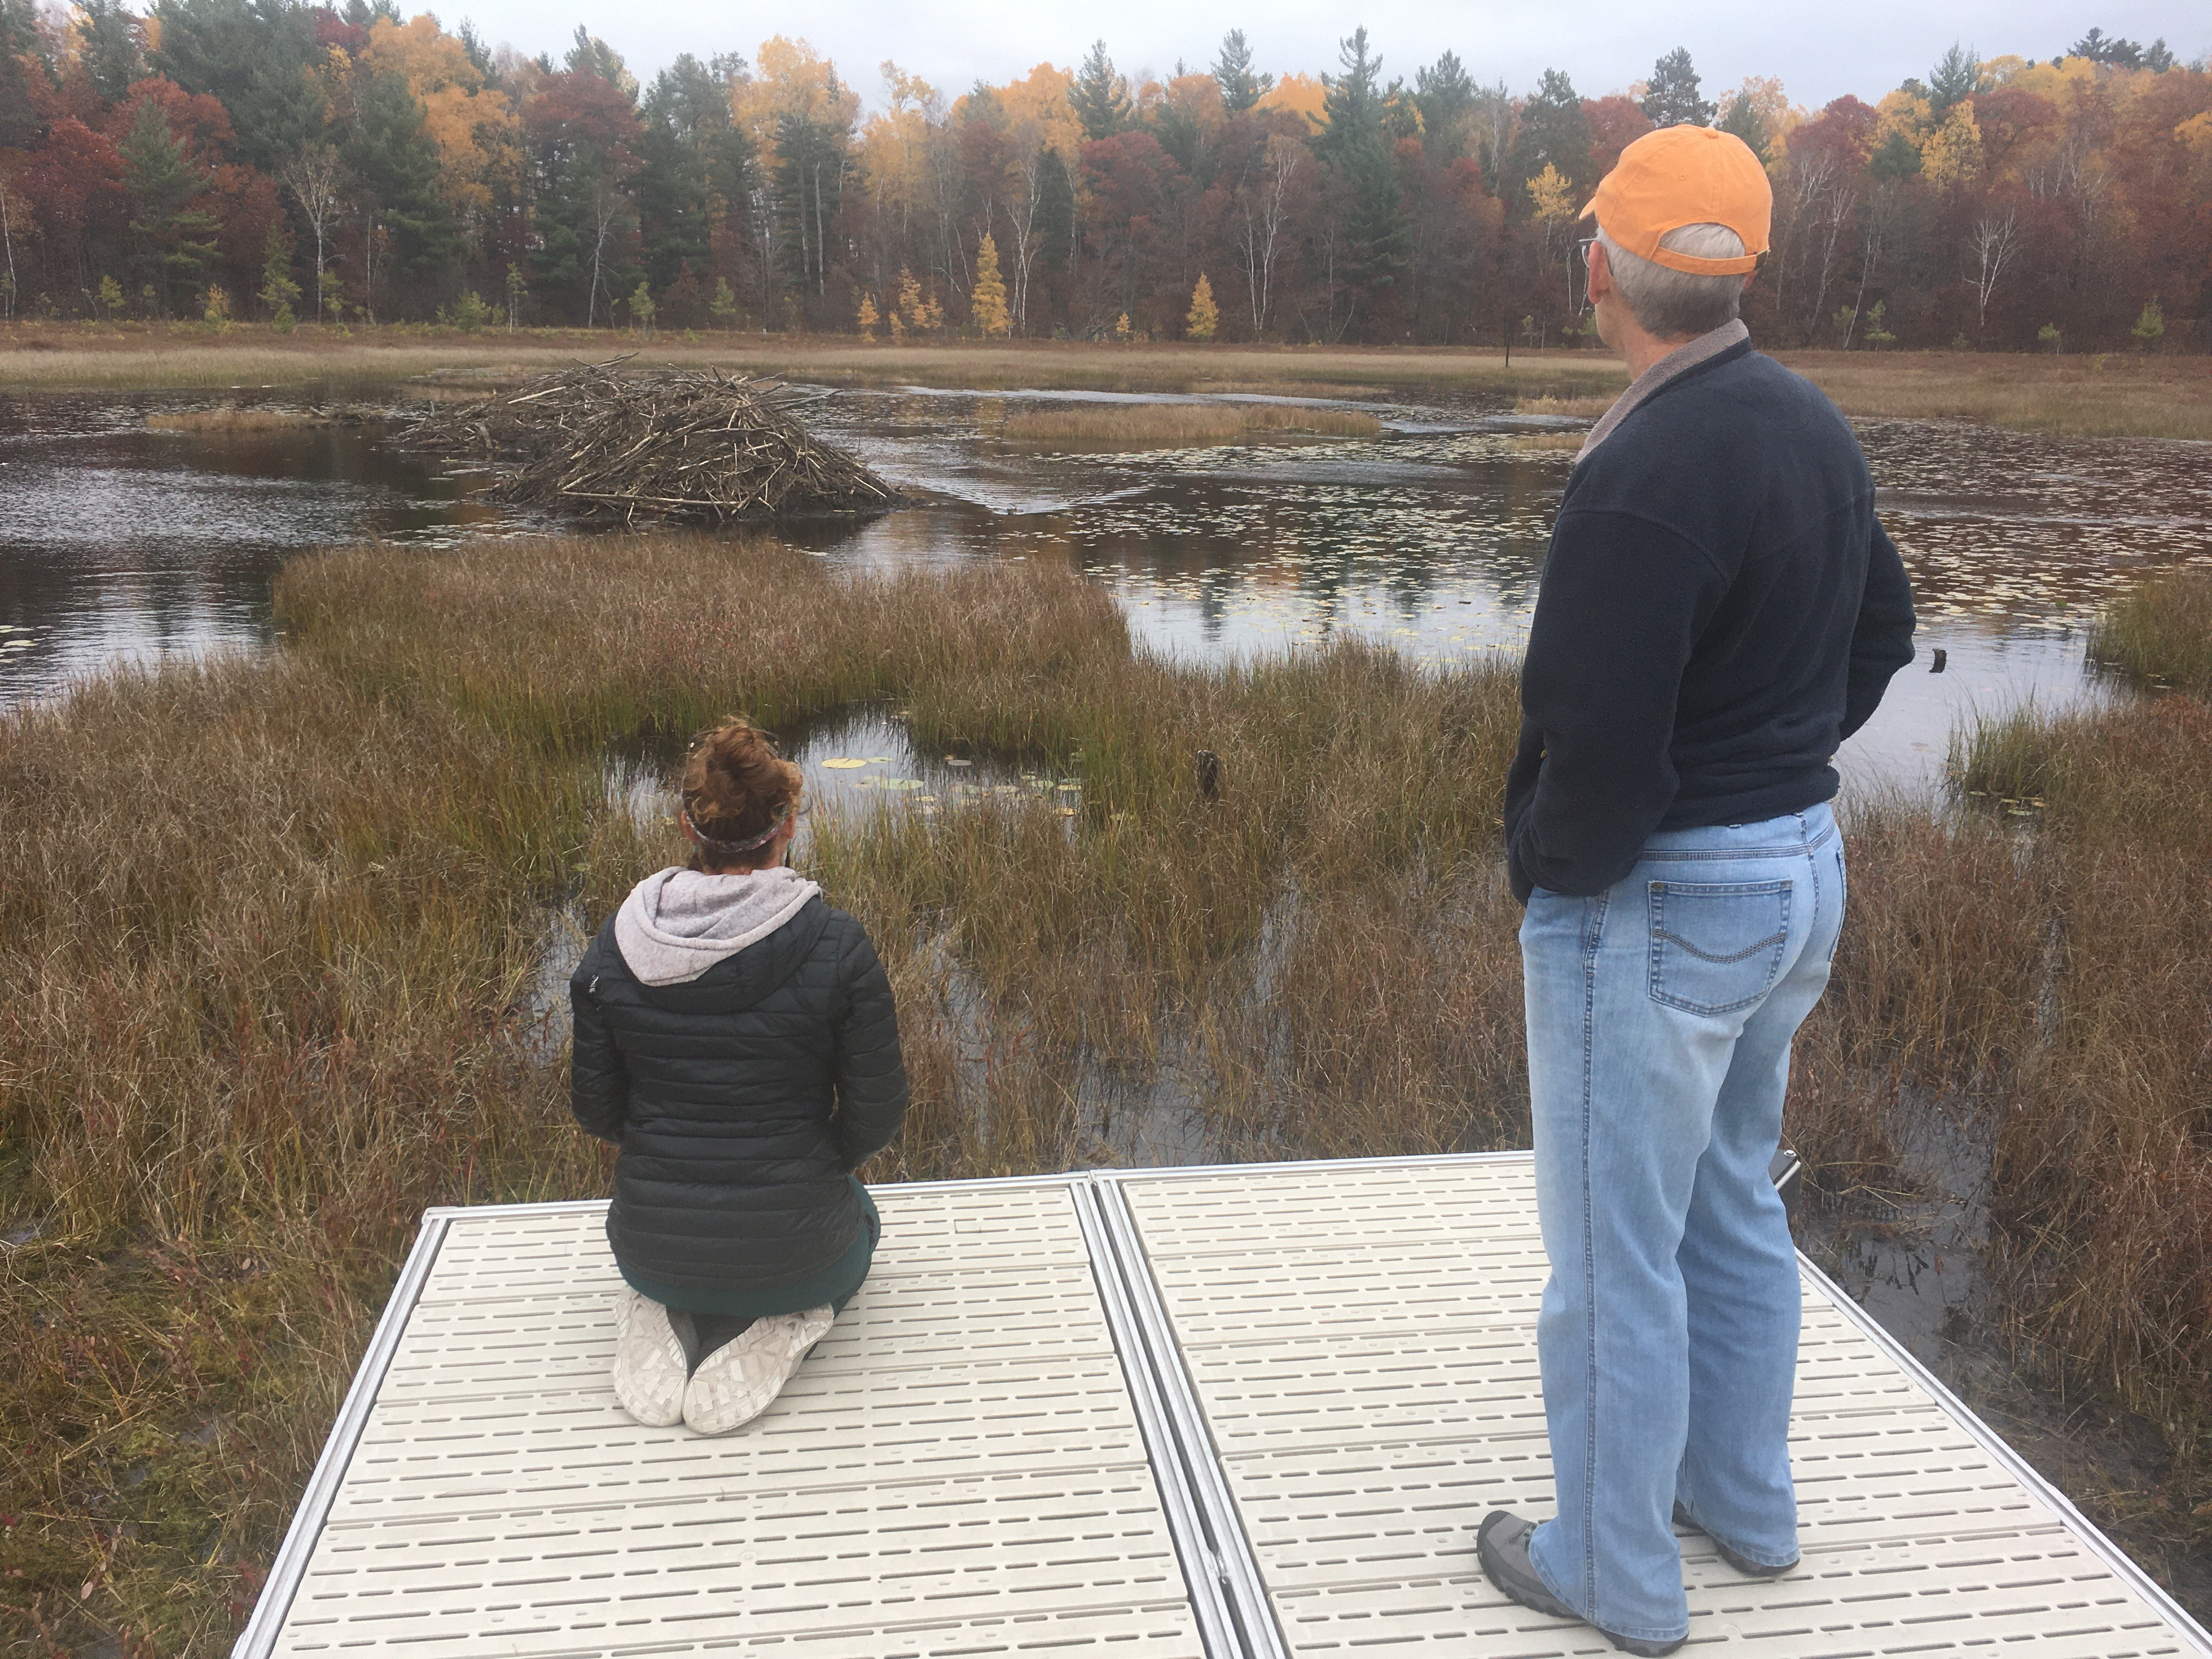 Two people watching a beaver swim in a bog.